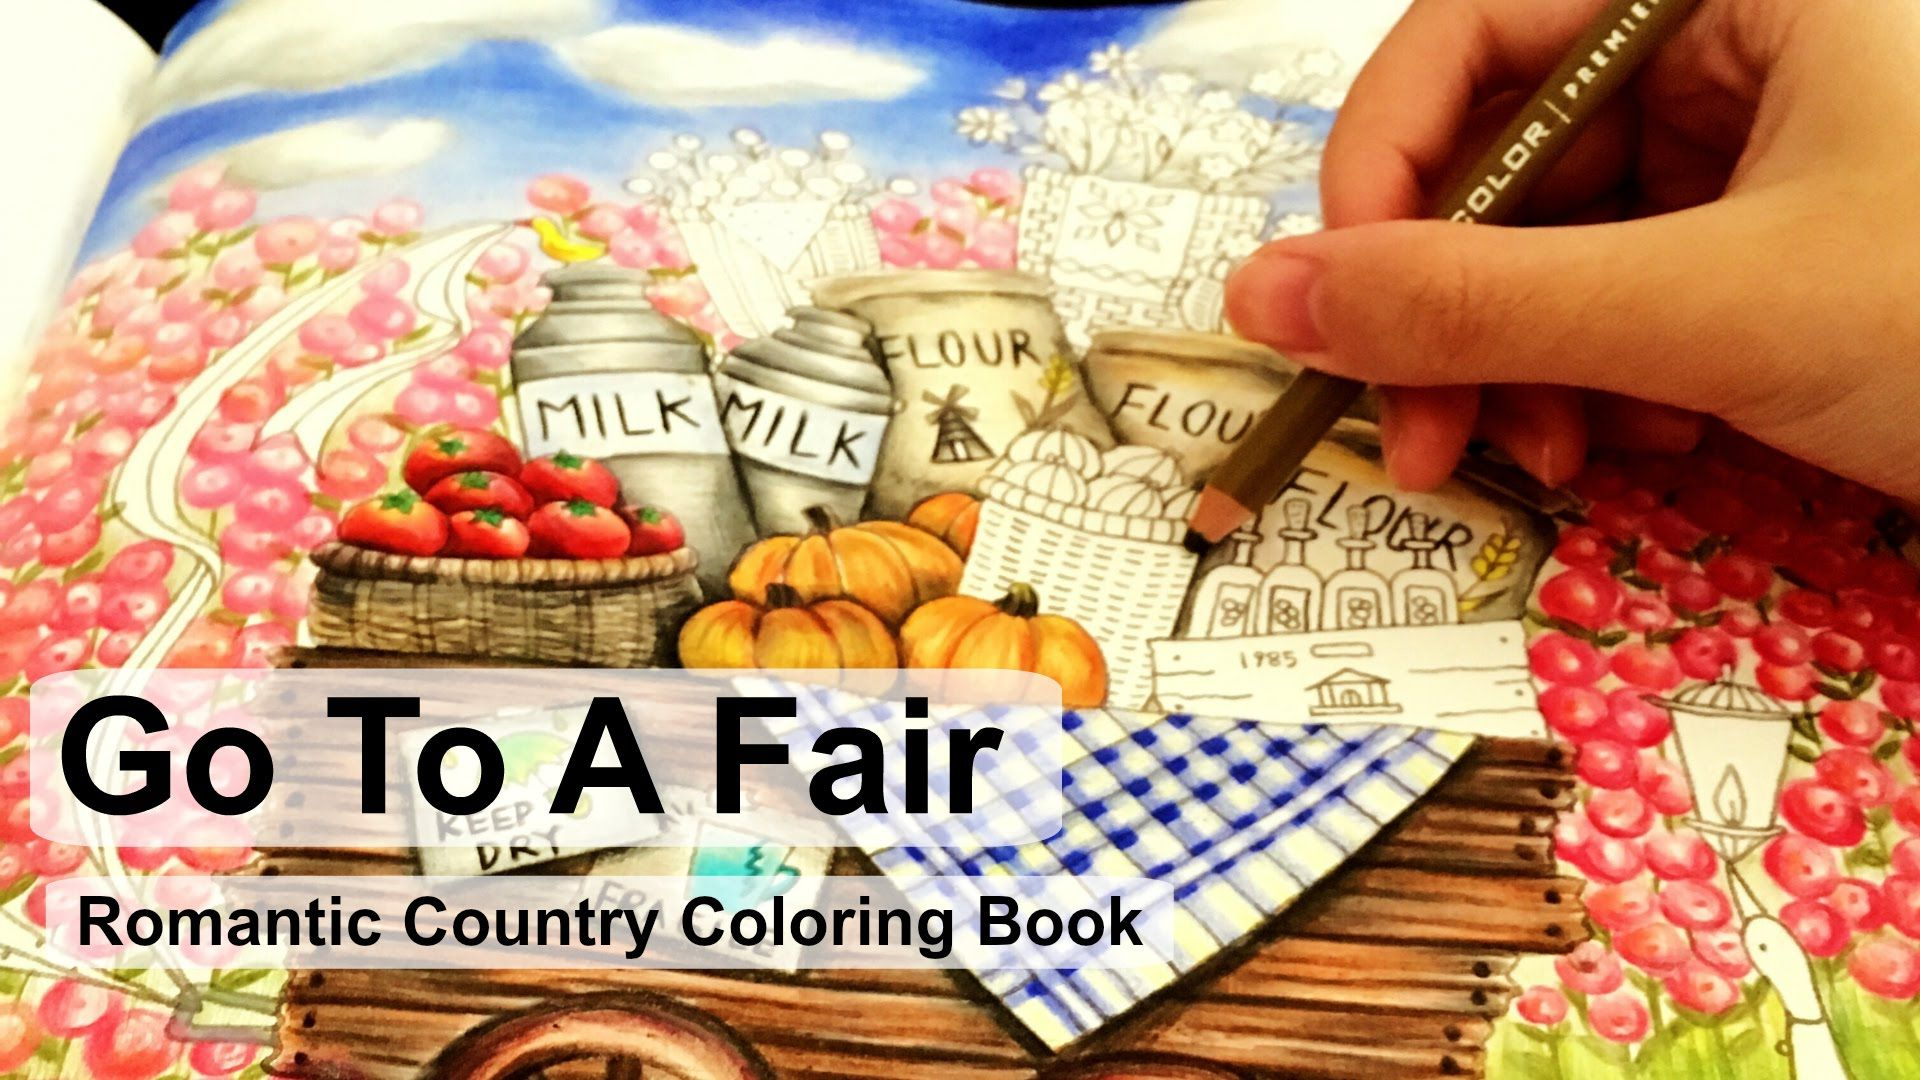 Go to a fair adult coloring book romantic country by eriy